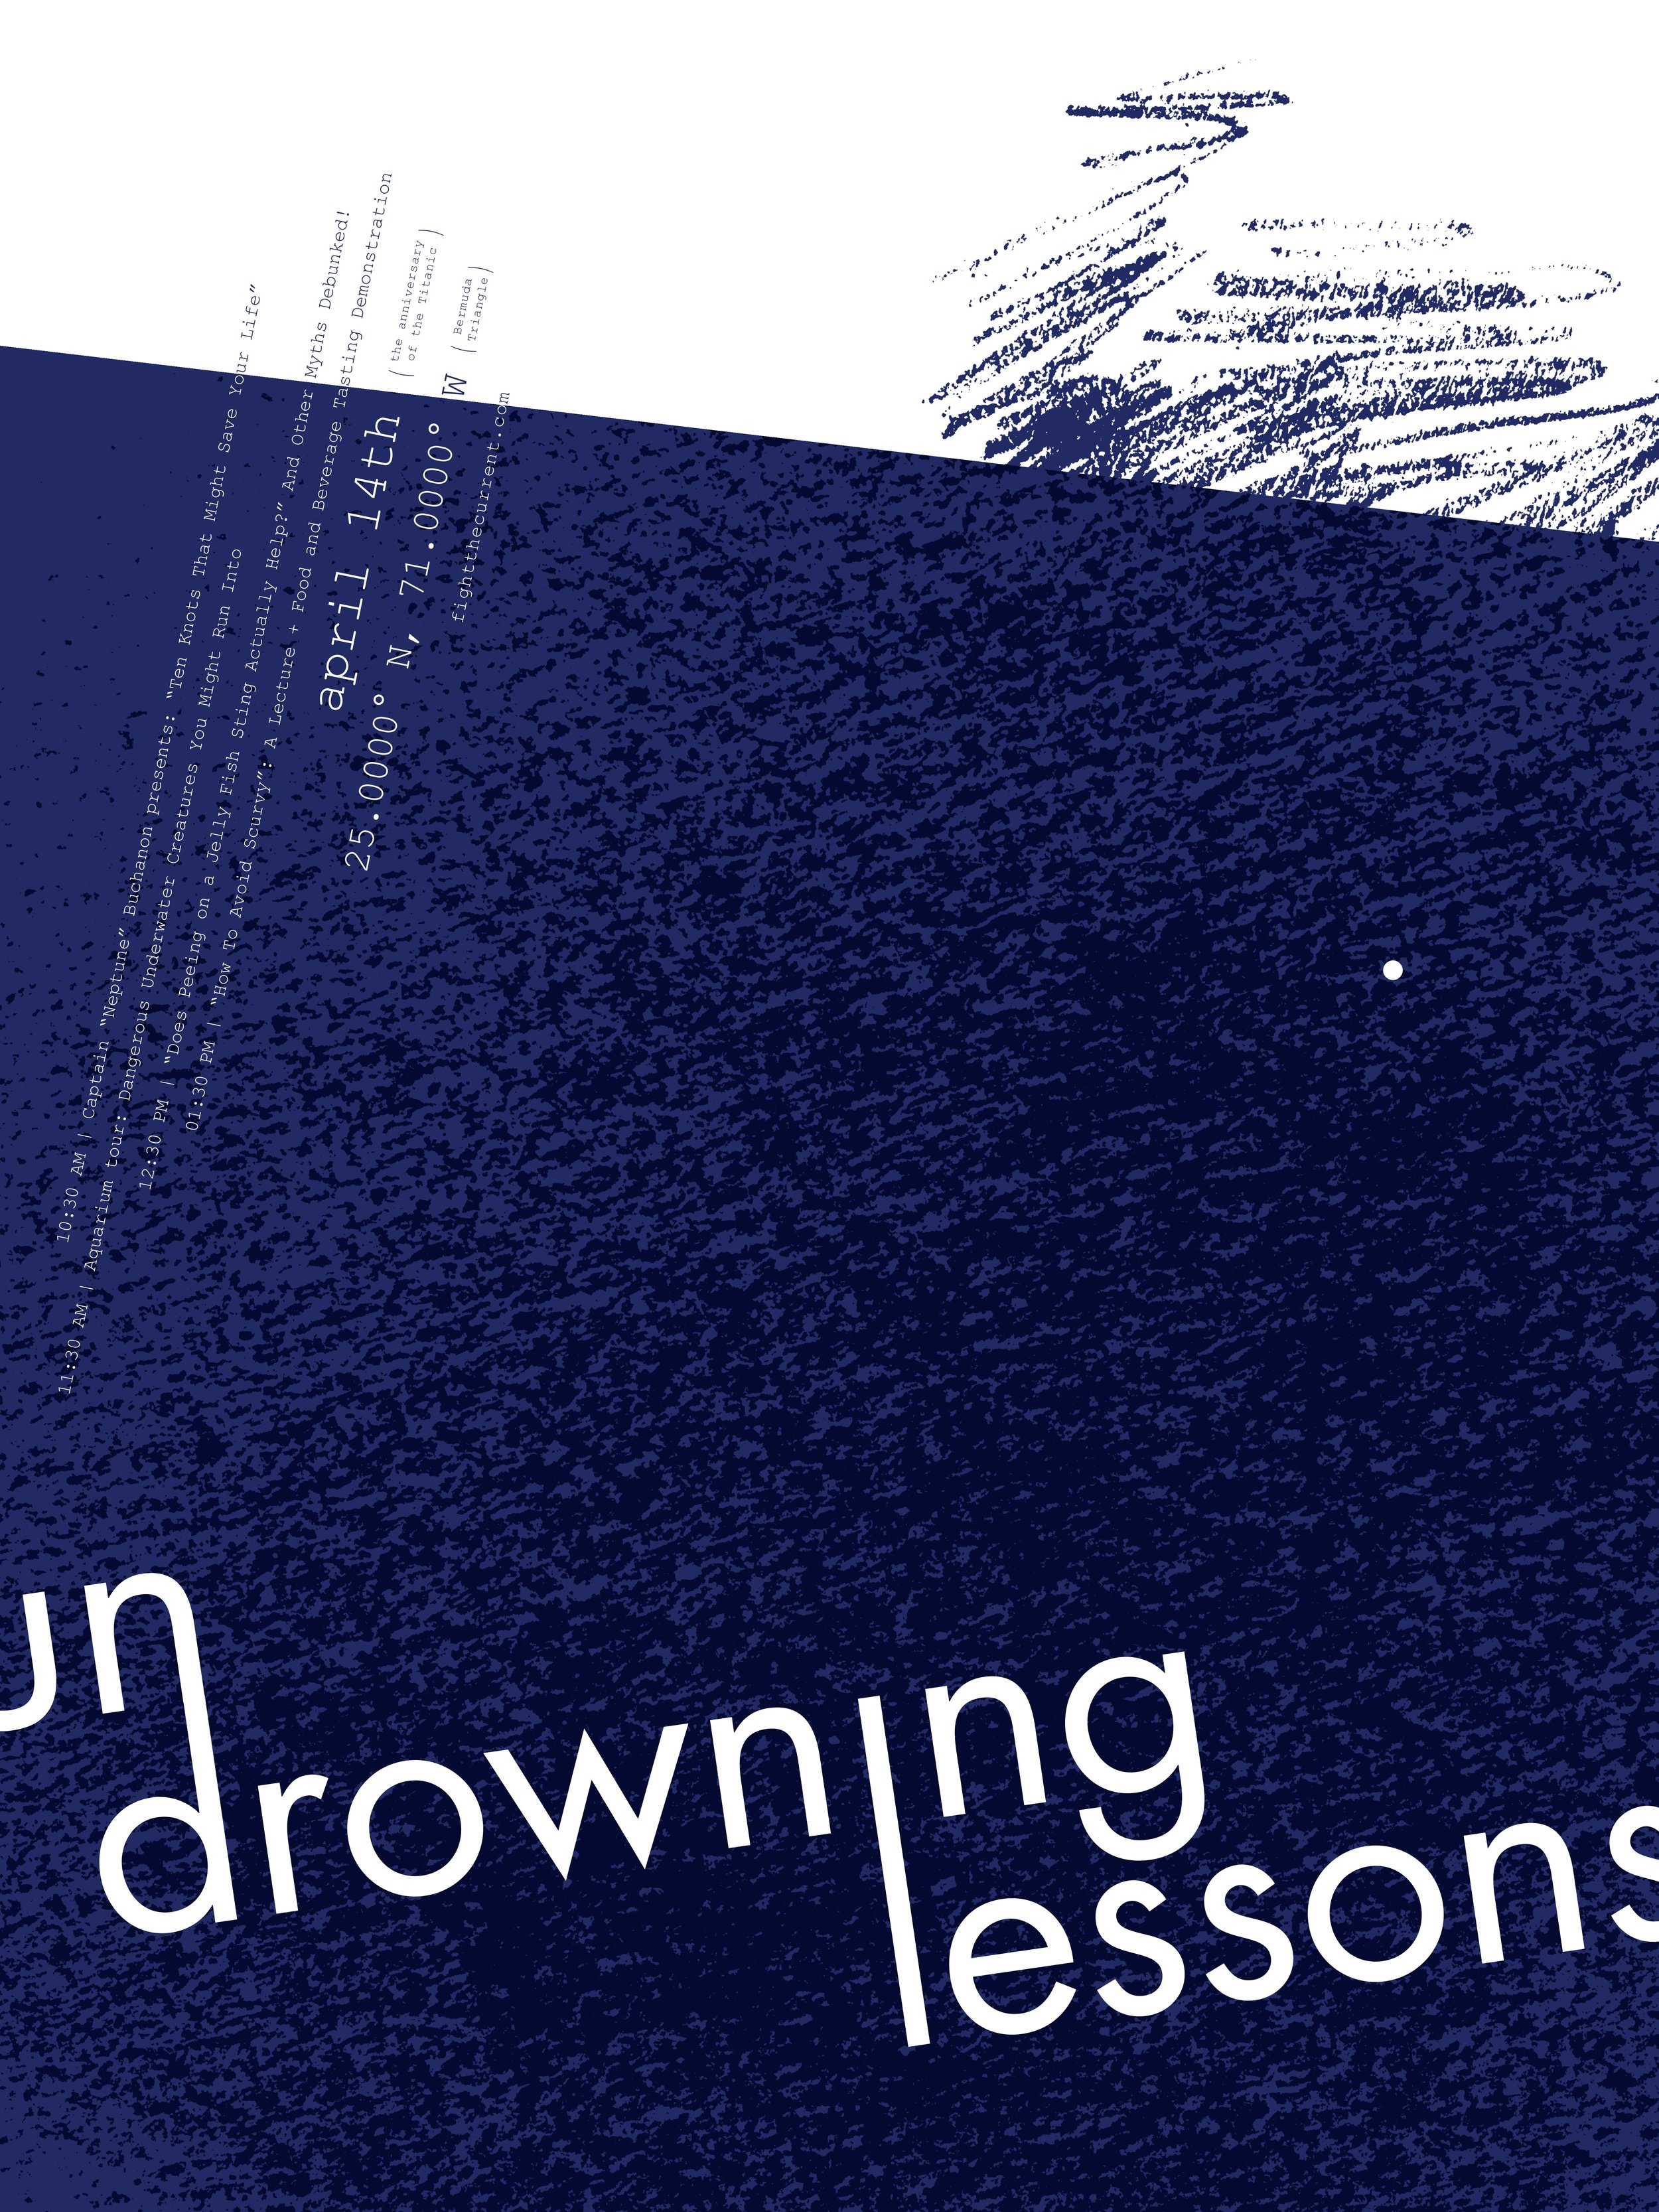 un-drowning-lessons.jpg